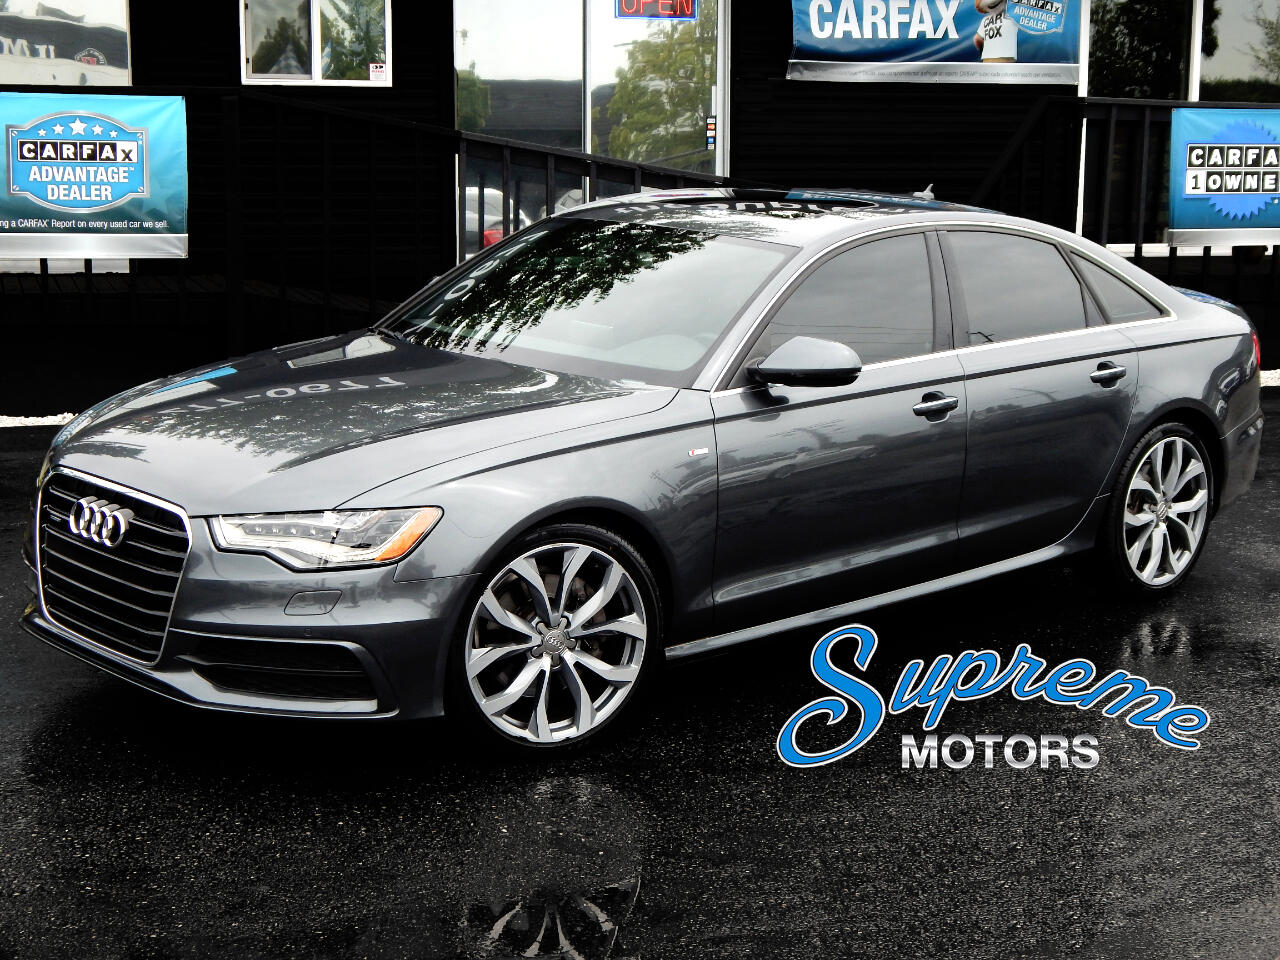 2015 Audi A6 S-Line Package TDI w/Headlight Package + MORE